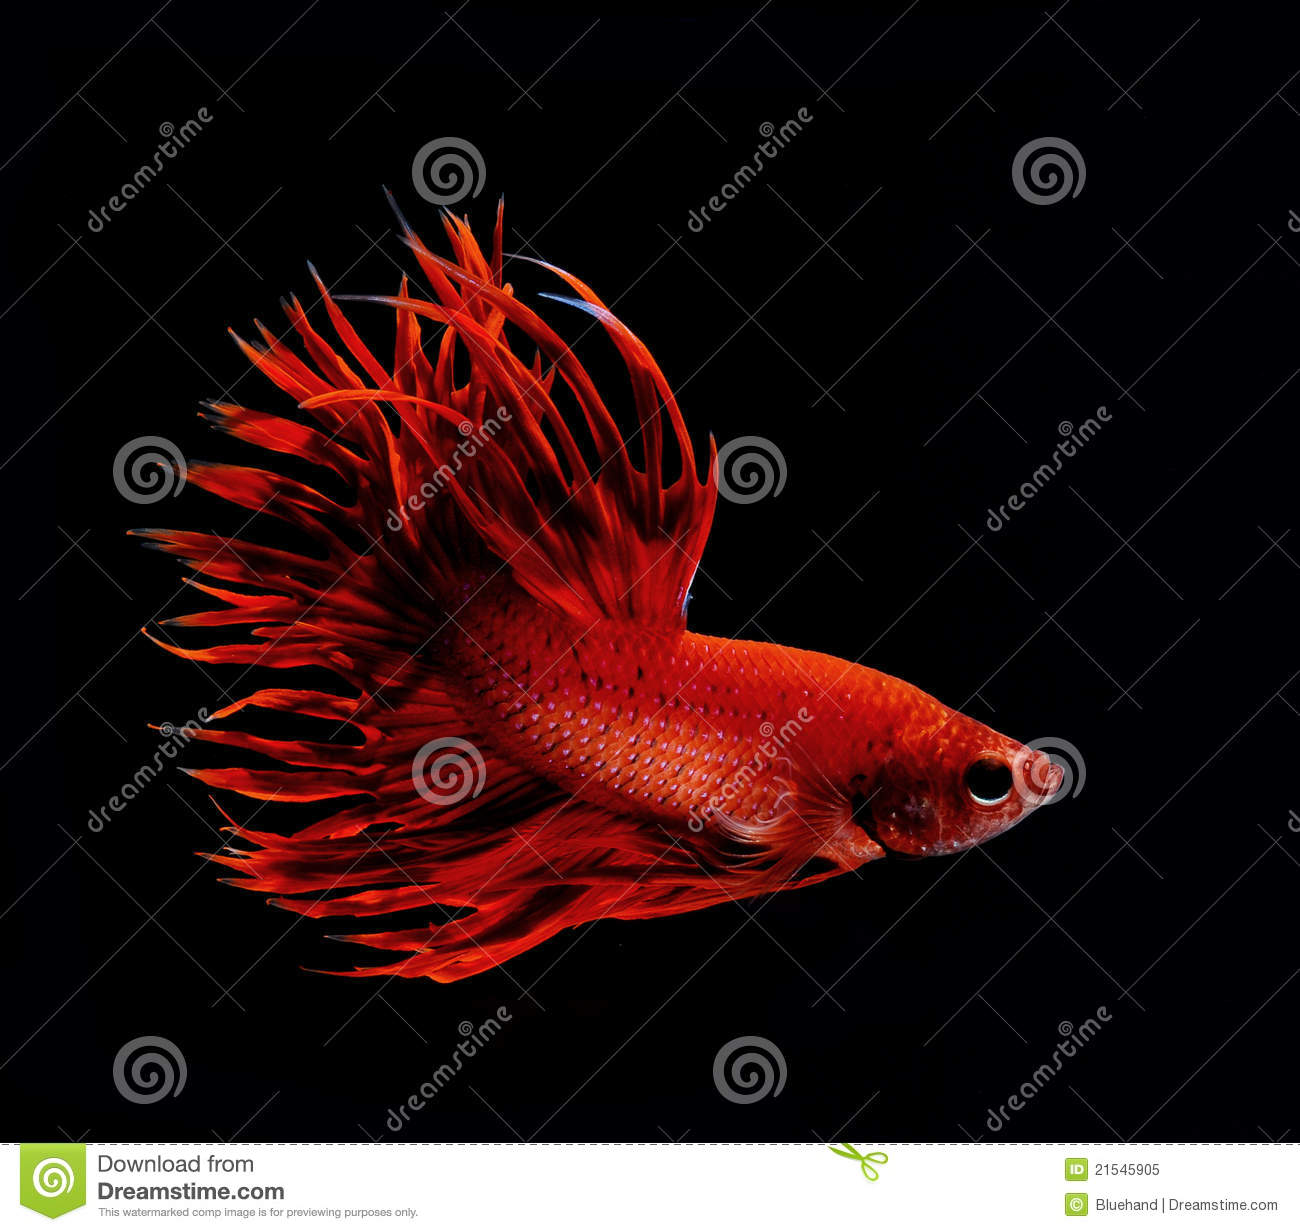 Dark red betta fish - photo#17